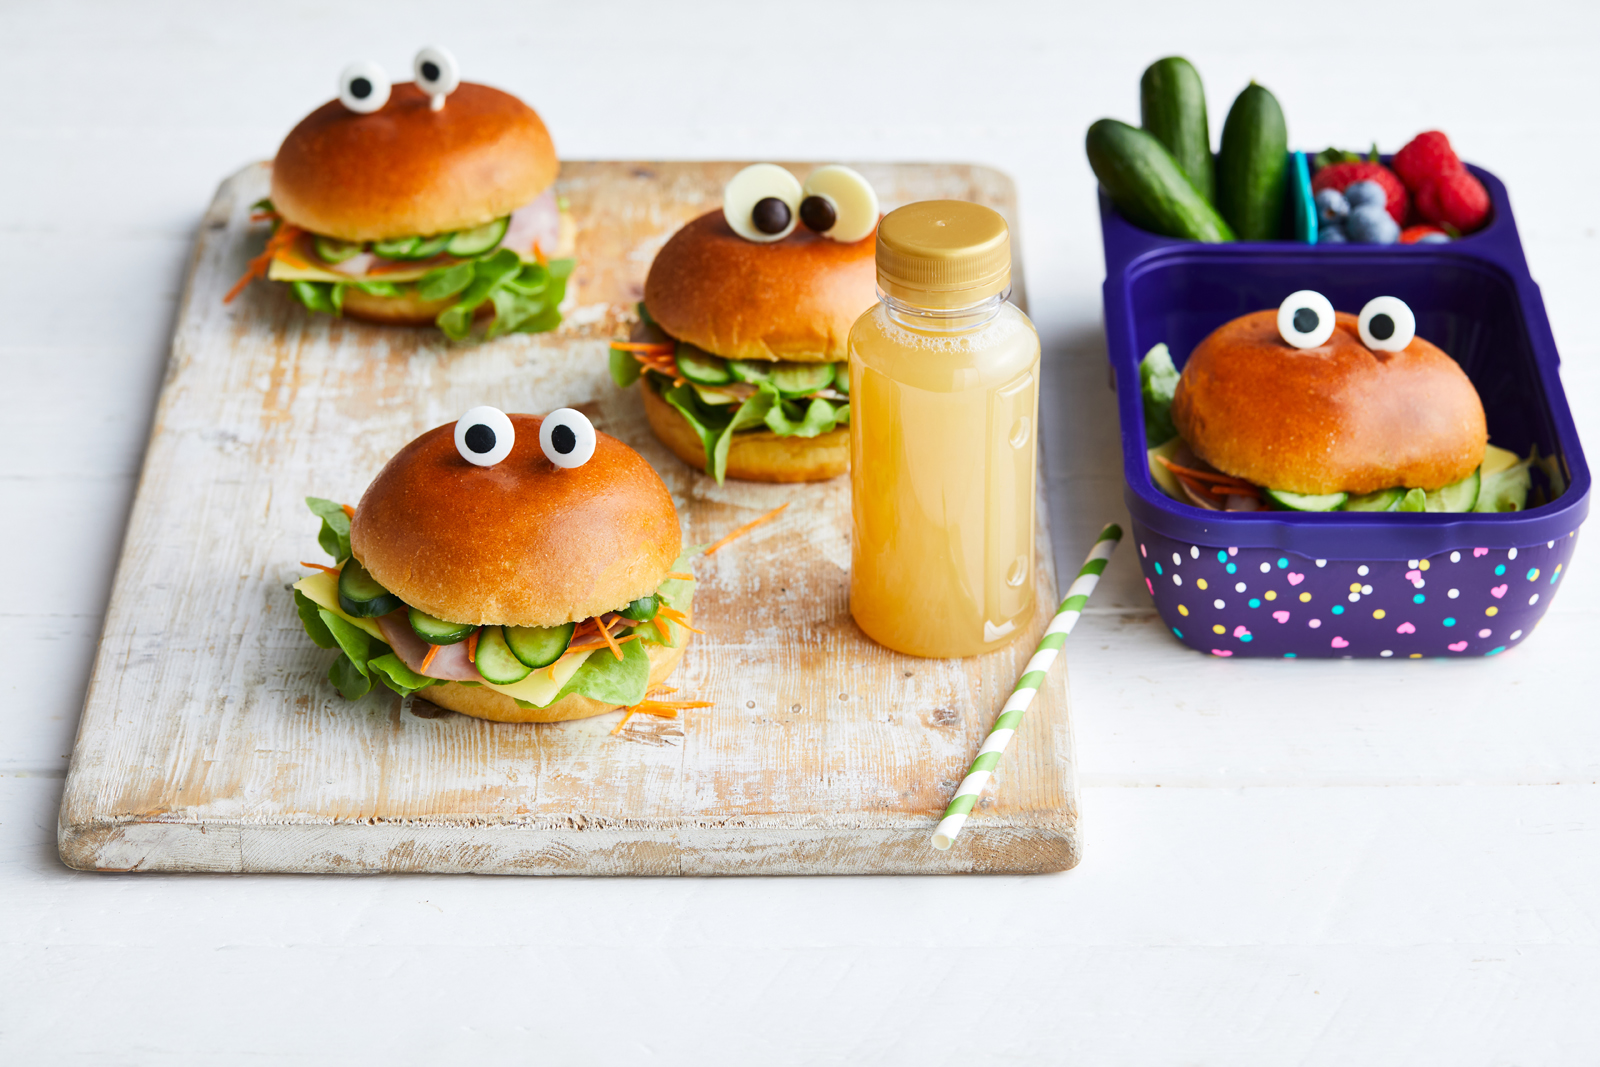 Recipe_LR_Qukes_Quke And Salad Monsters_01_Janelle Bloom_2019-1